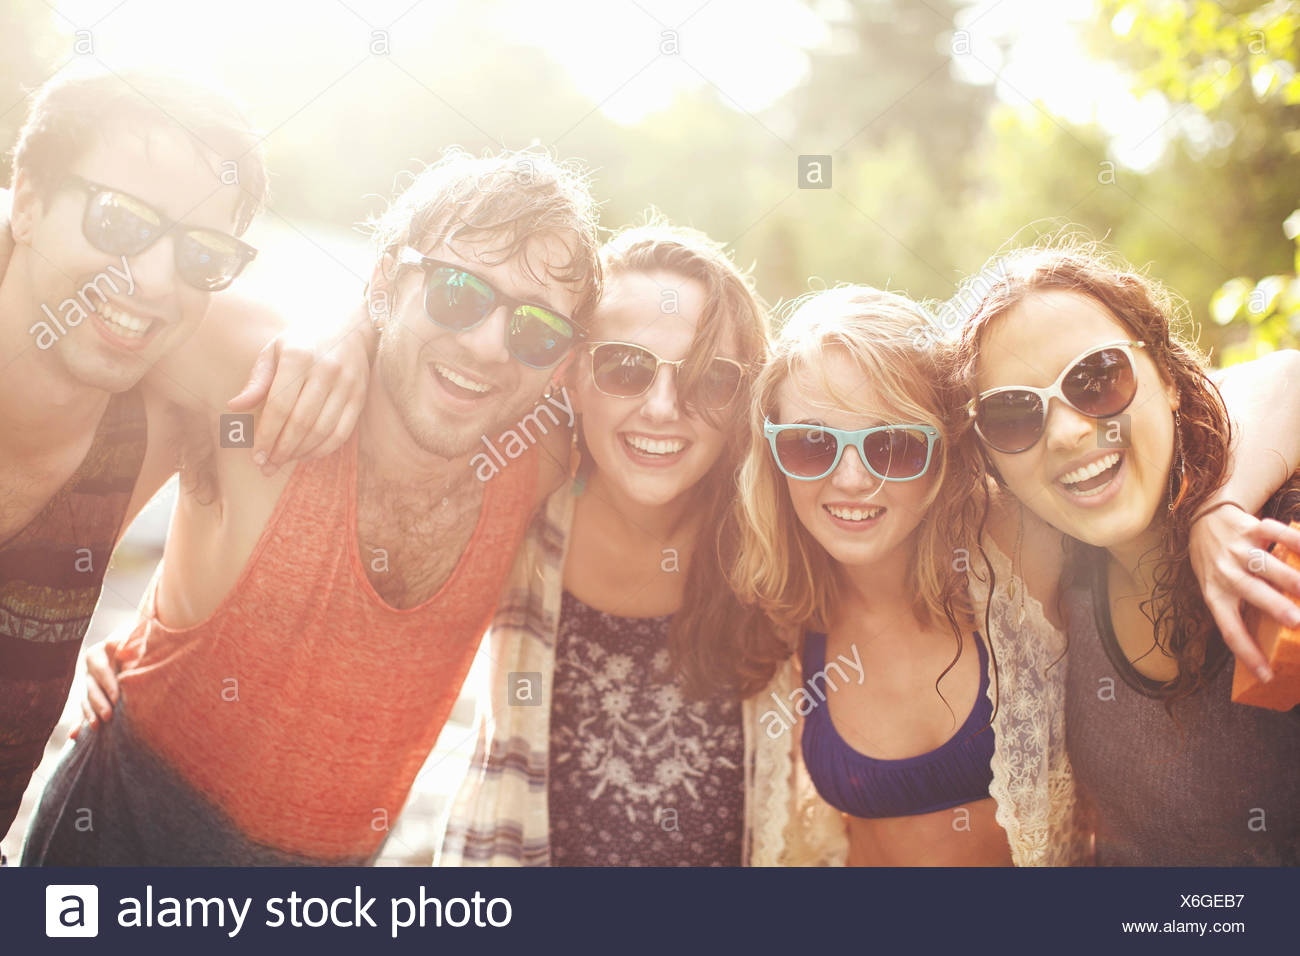 Five friends with arms around each other, portrait Stock Photo